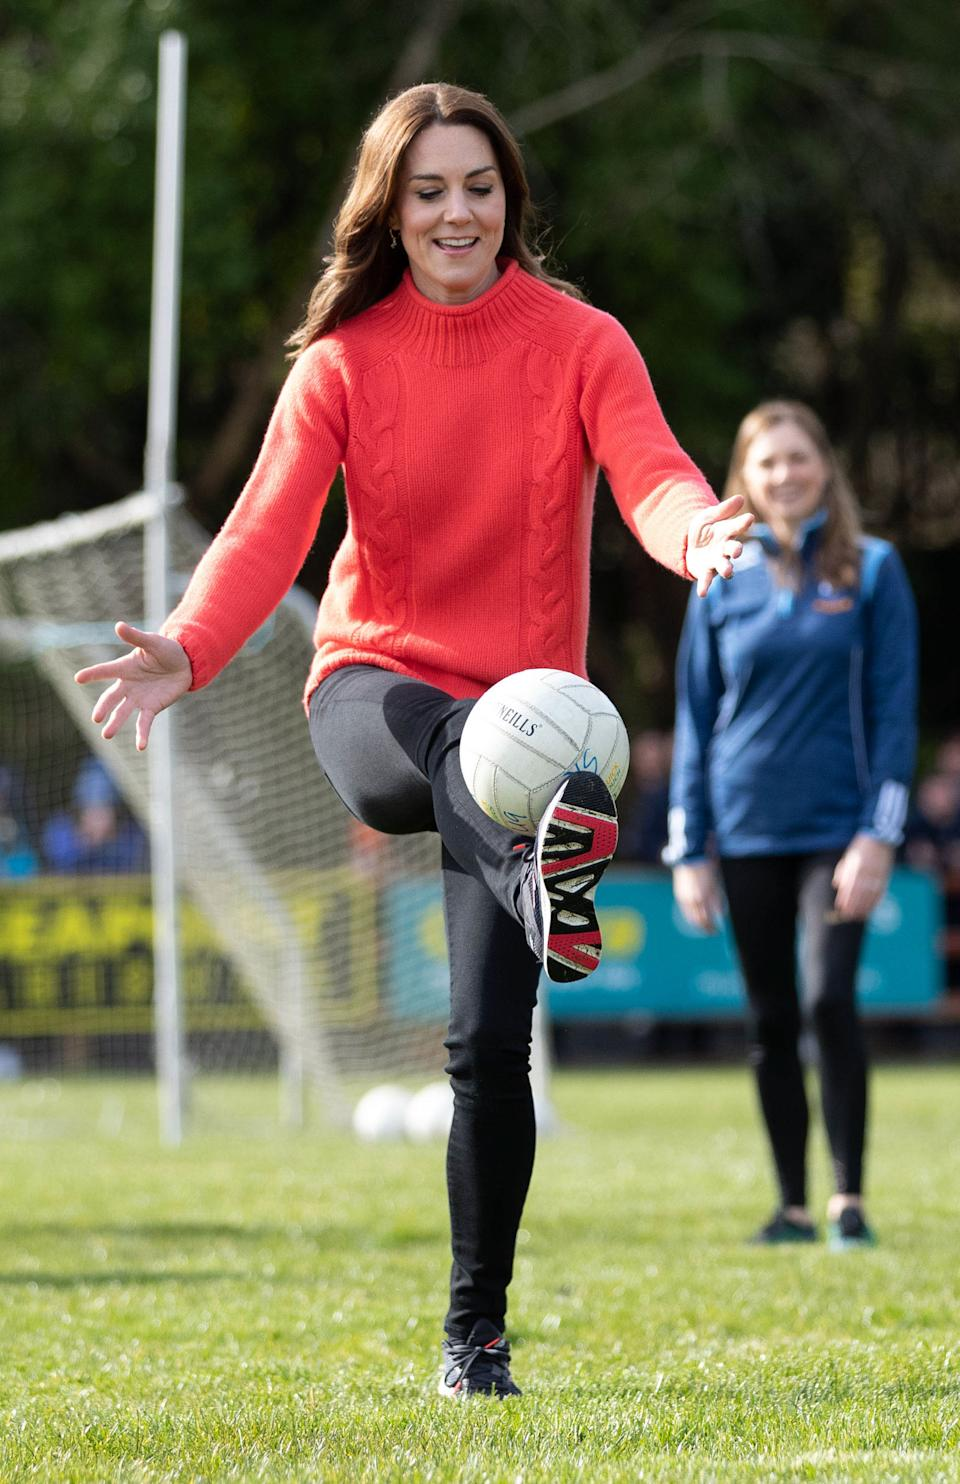 GALWAY, IRELAND - MARCH 05: Catherine, Duchess of Cambridge visits Salthill GAA club and participate in some hurling and gaelic football on the third day of their first official visit to Ireland on March 5, 2020 in Galway, Ireland.   (Photo by Julien BehalPool/Samir Hussein/WireImage)